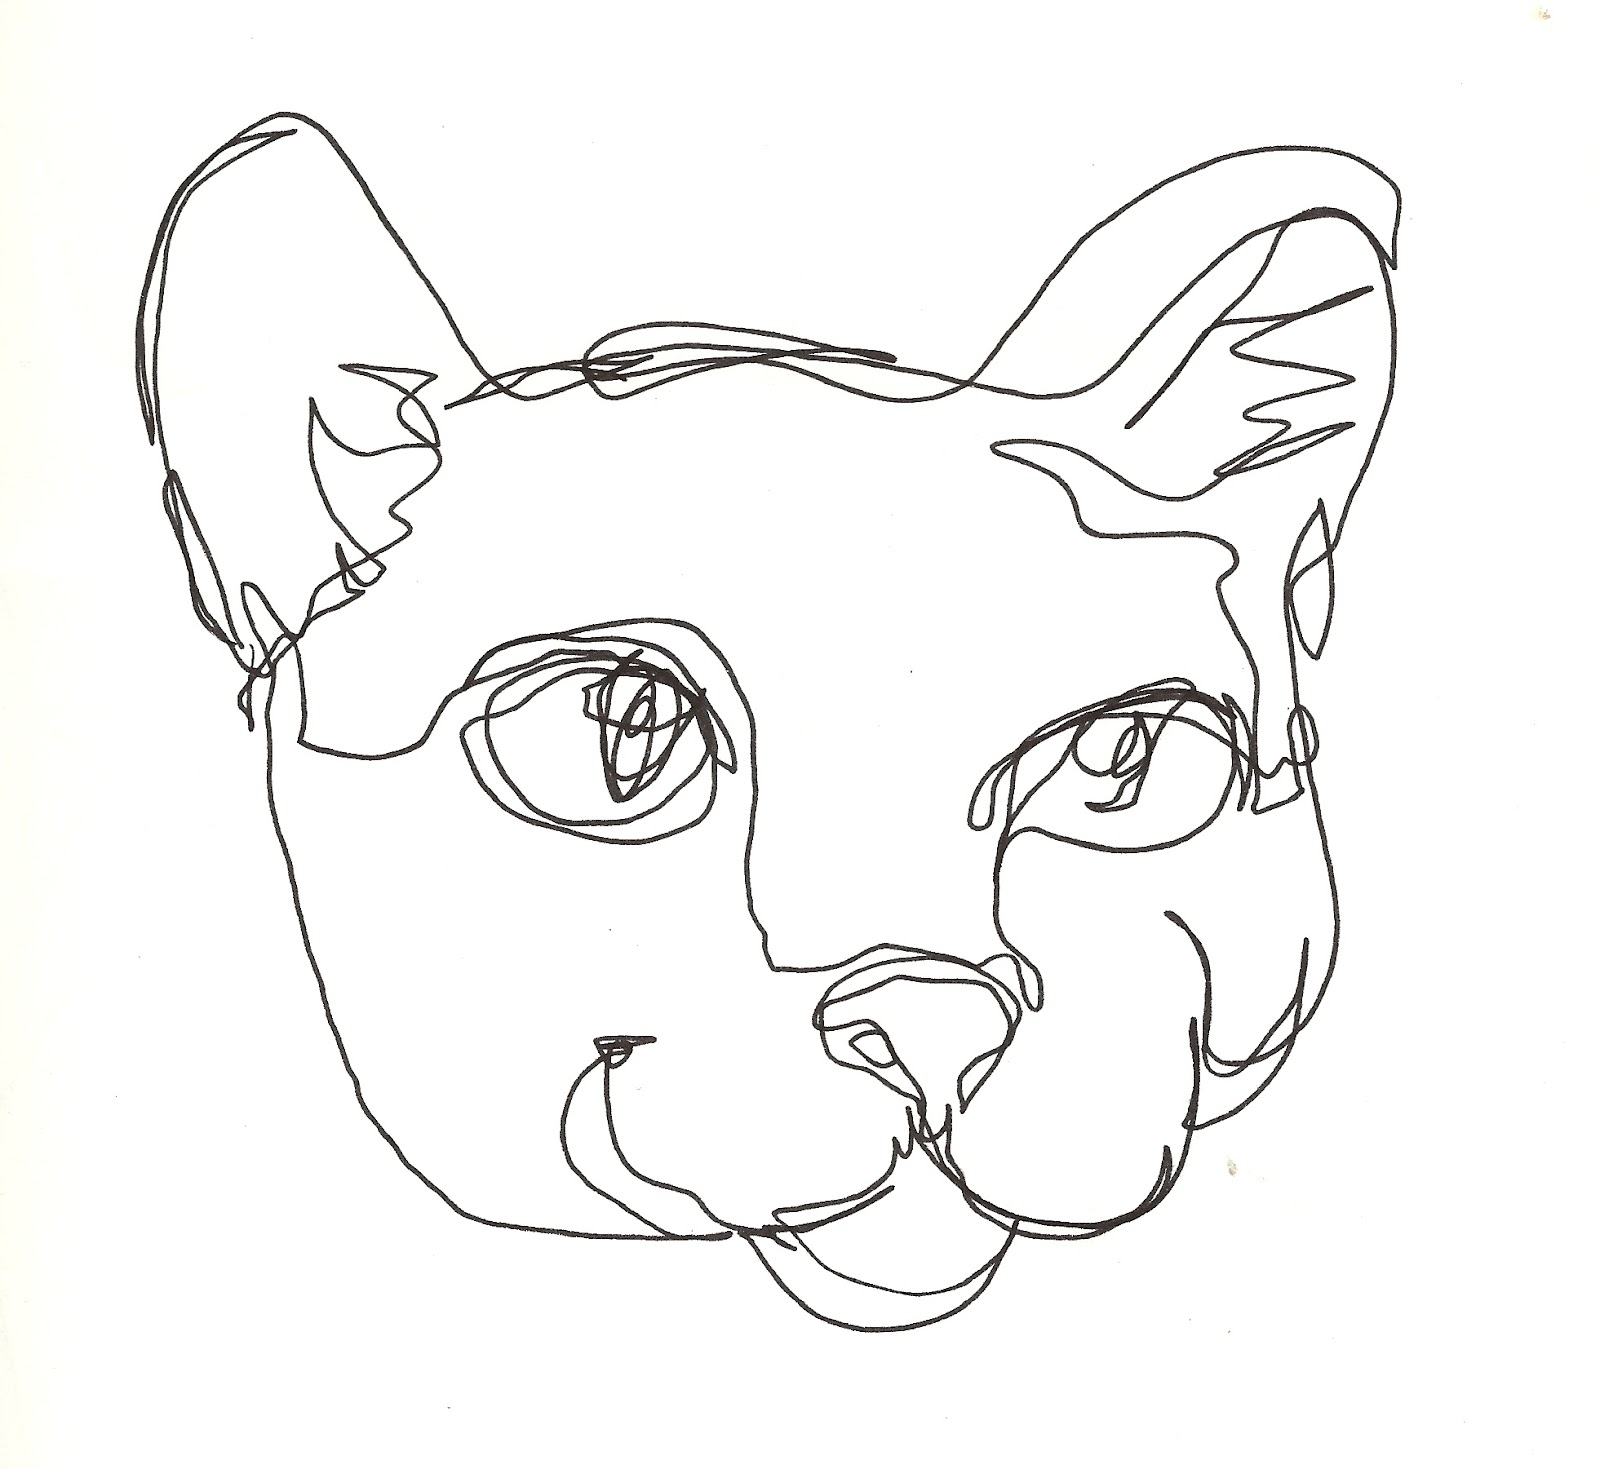 Cat Contour Line Drawing : Blind contours an exhibit